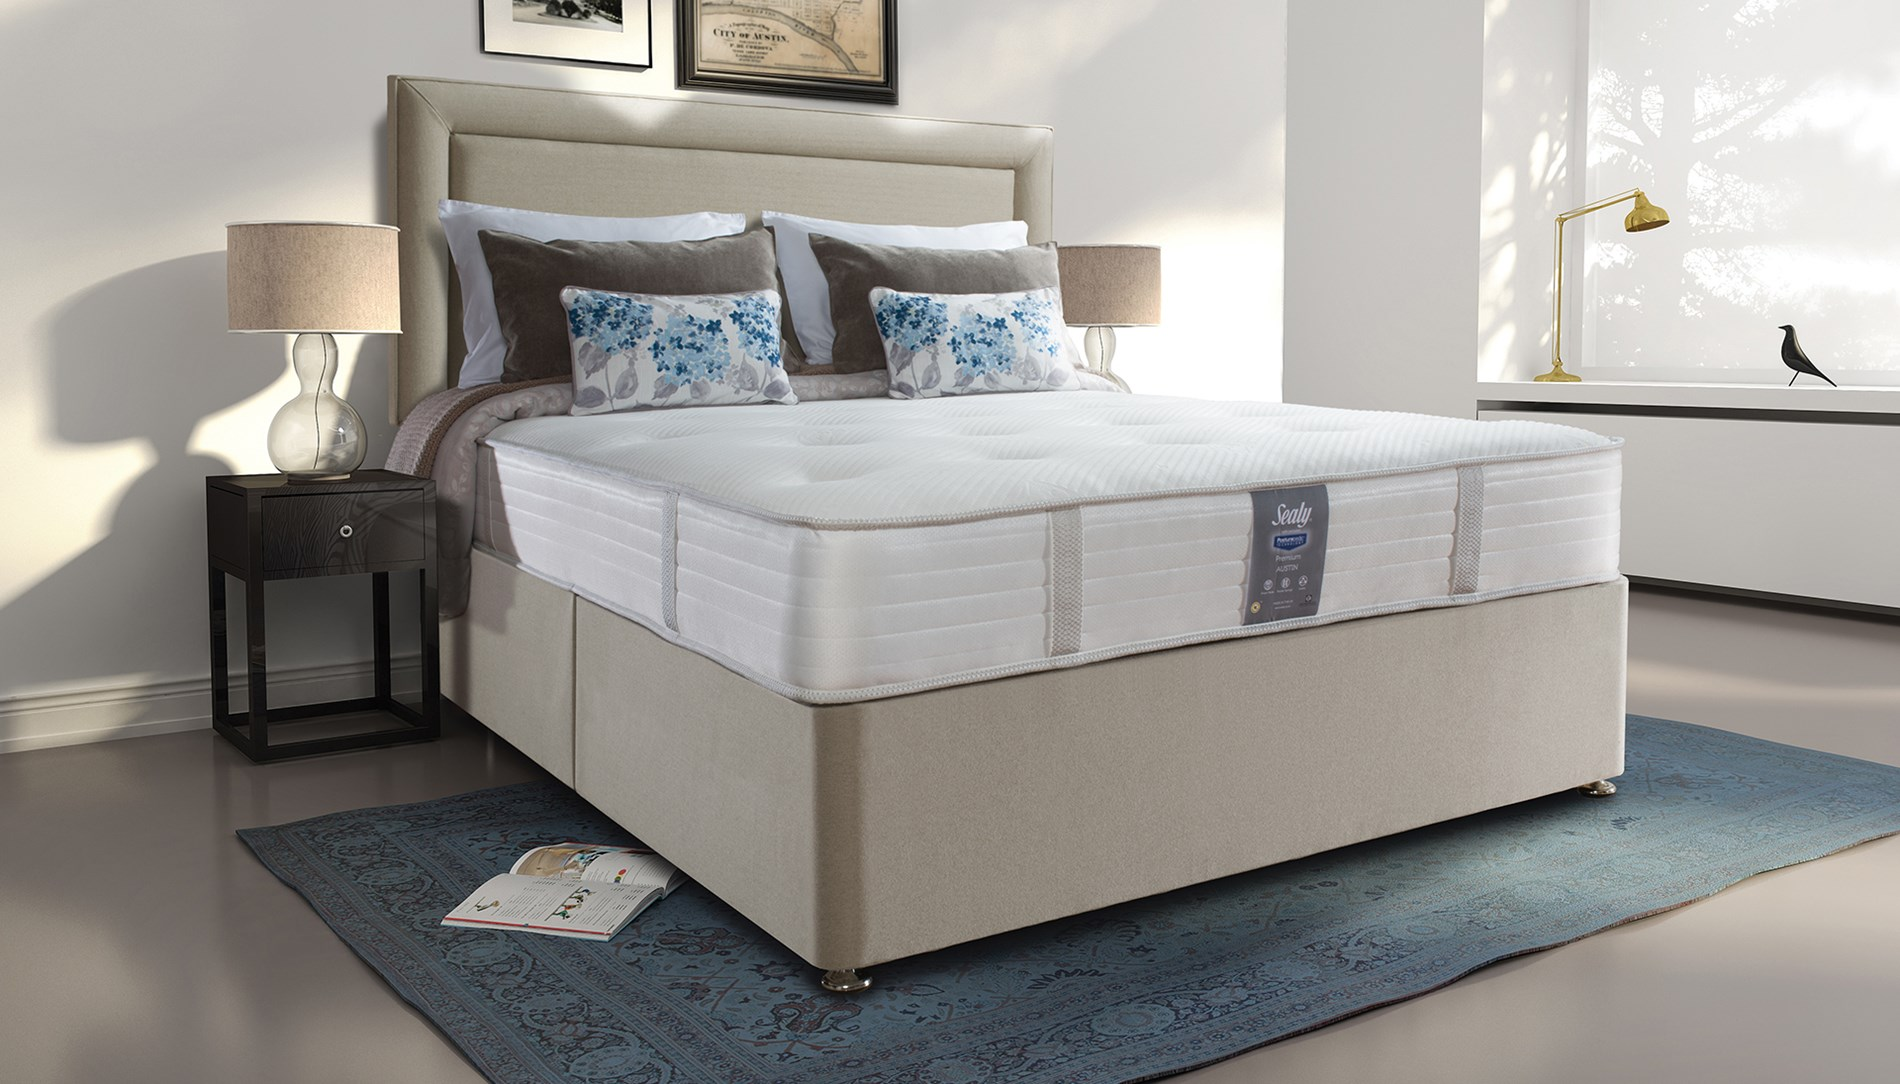 Sealy Posturepedic Backcare Elite Mattress The Bed Shop Alfreton Shop 404 The Requested Product Does Not